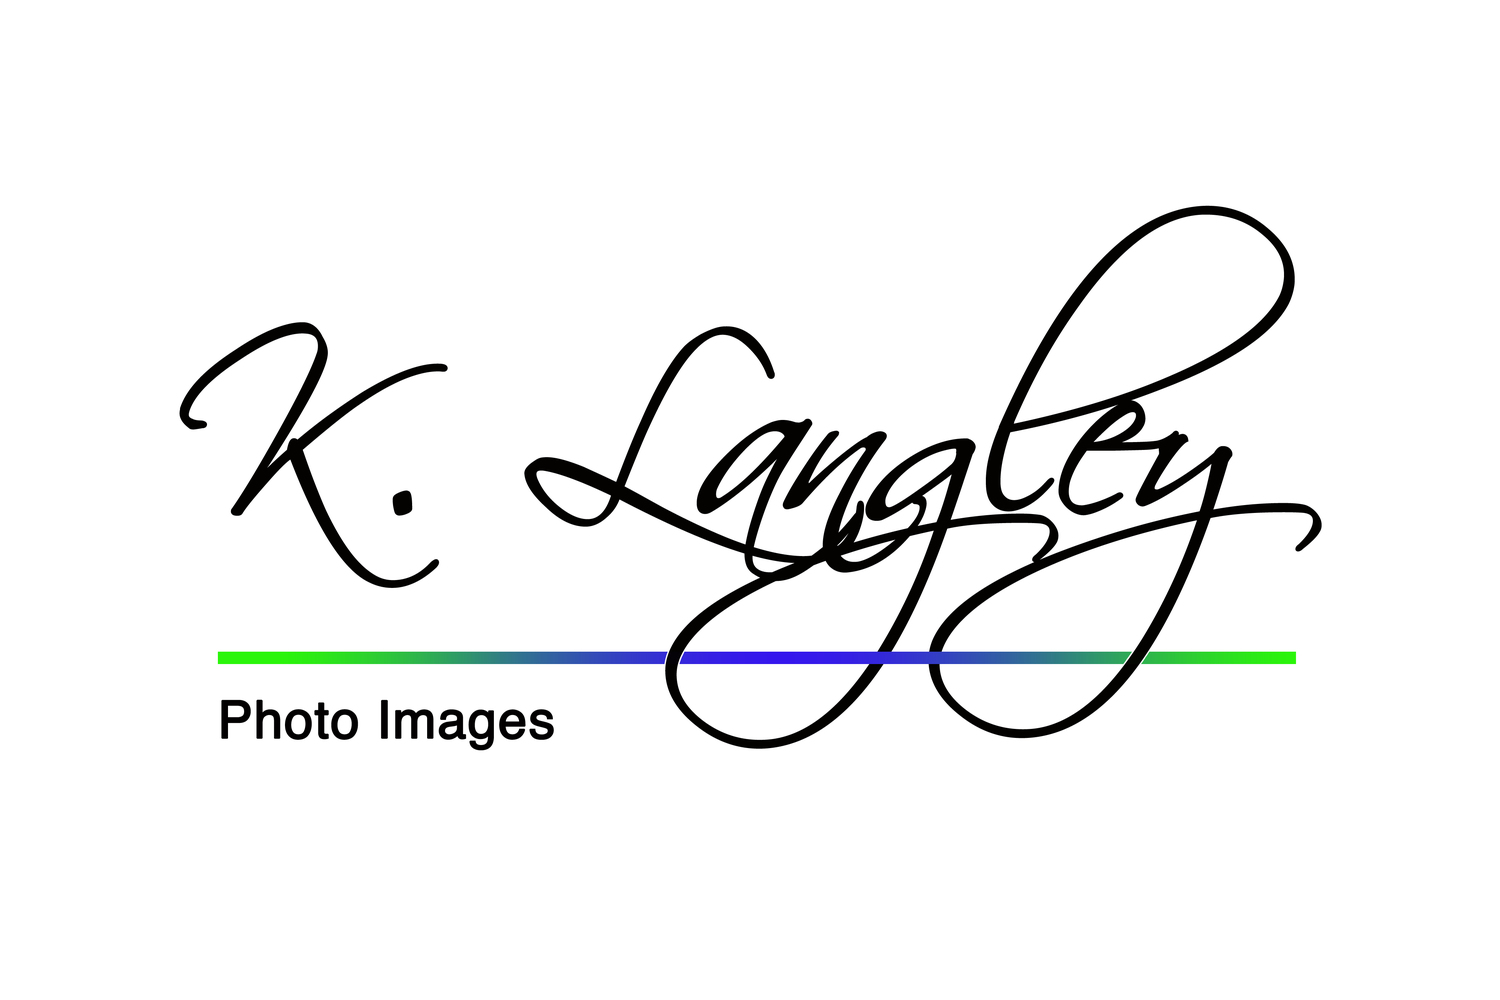 K. Langley Photo Images